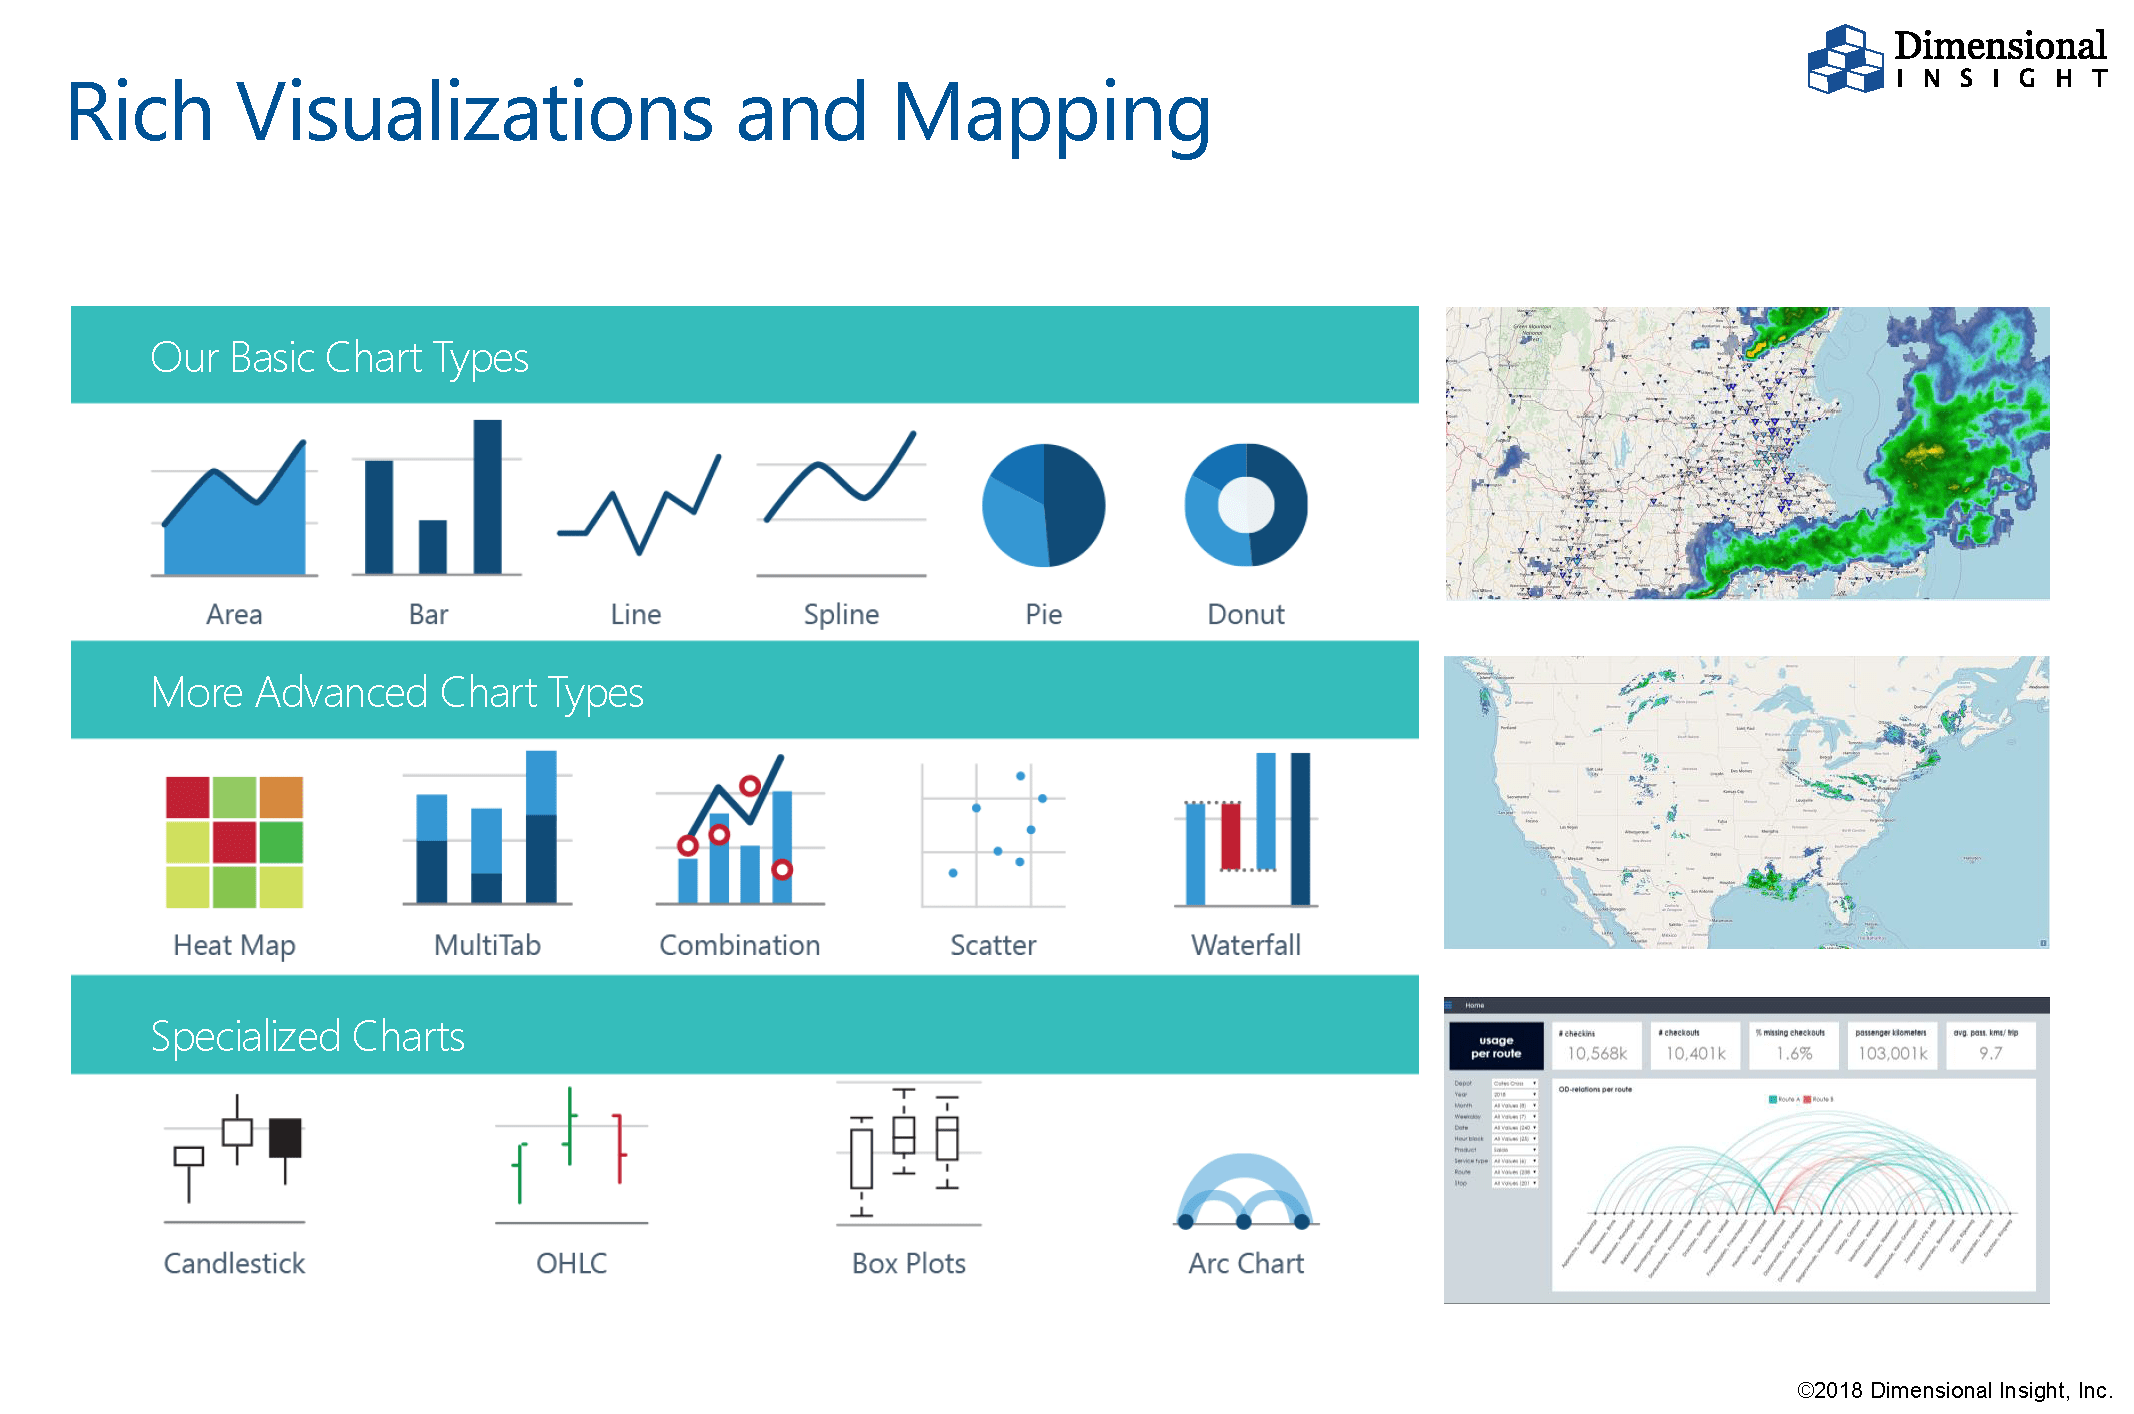 Rich visualizations and mapping